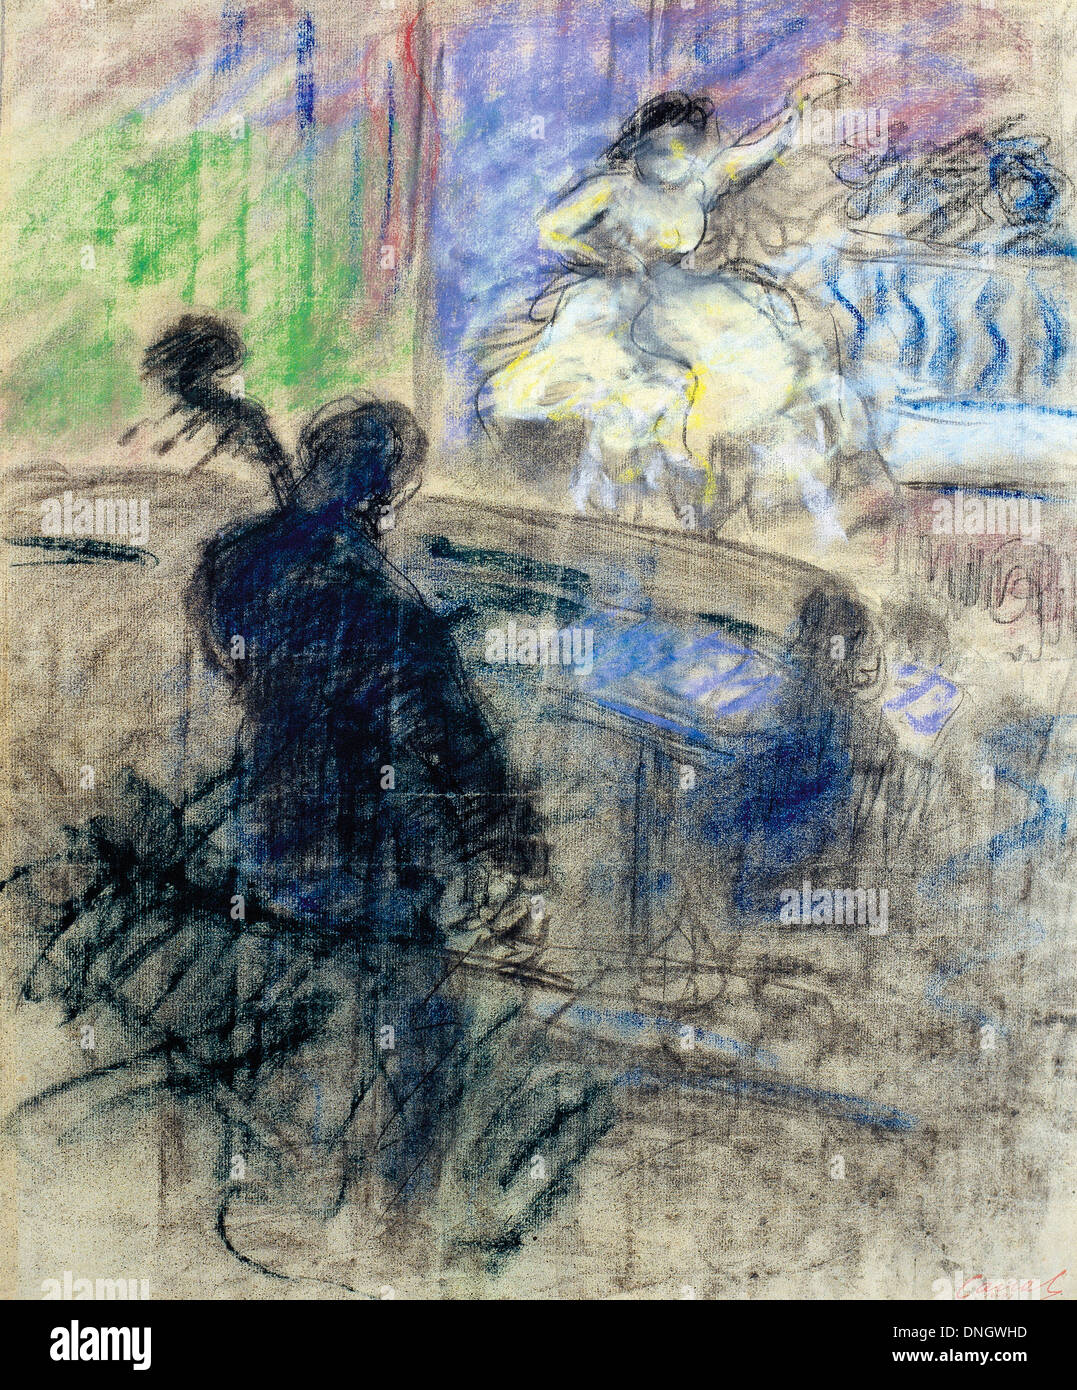 Ricard Canals, Music Hall Interior 1897-1899 Pastel and charcoal on paper. Museu Nacional d'Art de Catalunya, Barcelona, Stock Photo